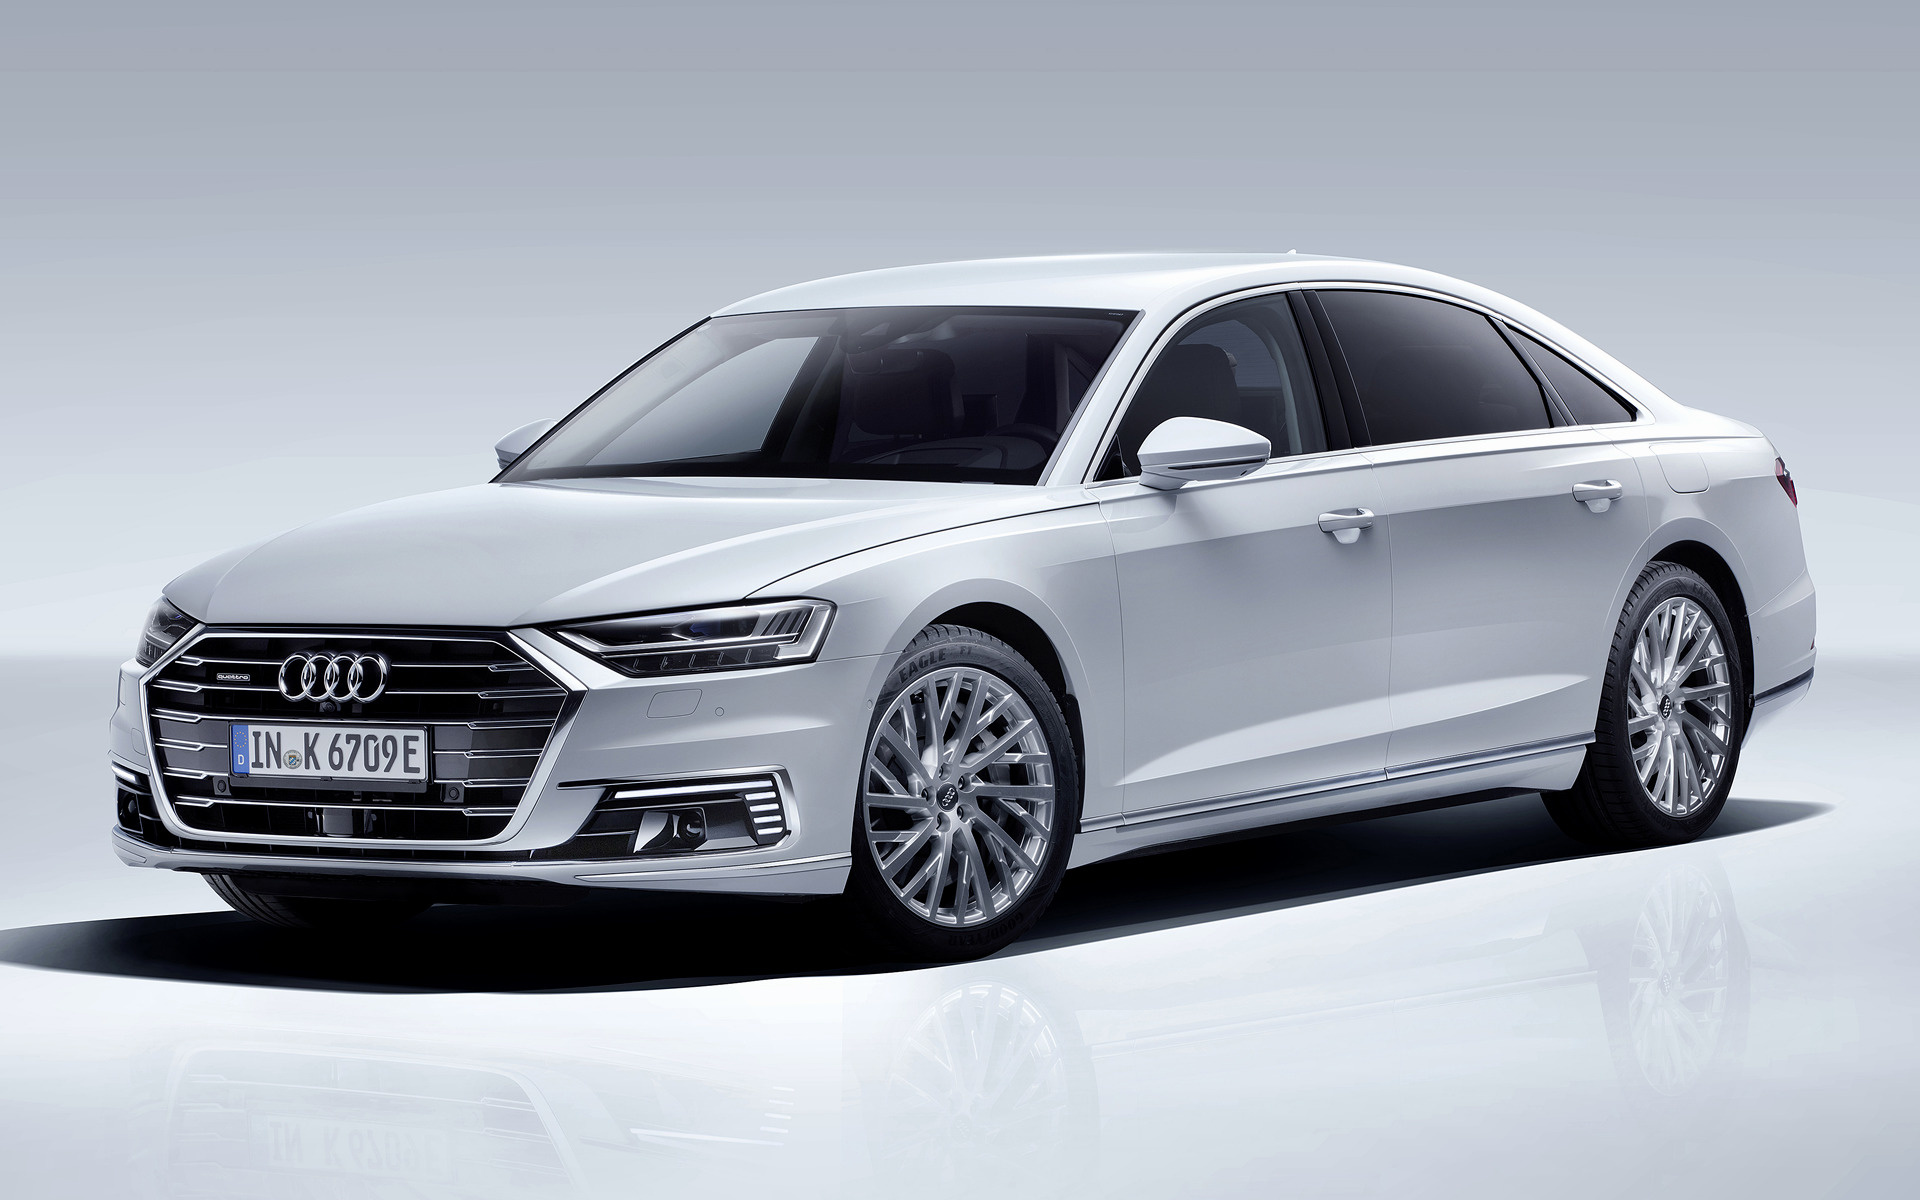 2019 Audi A8 L Plug In Hybrid Wallpapers And Hd Images